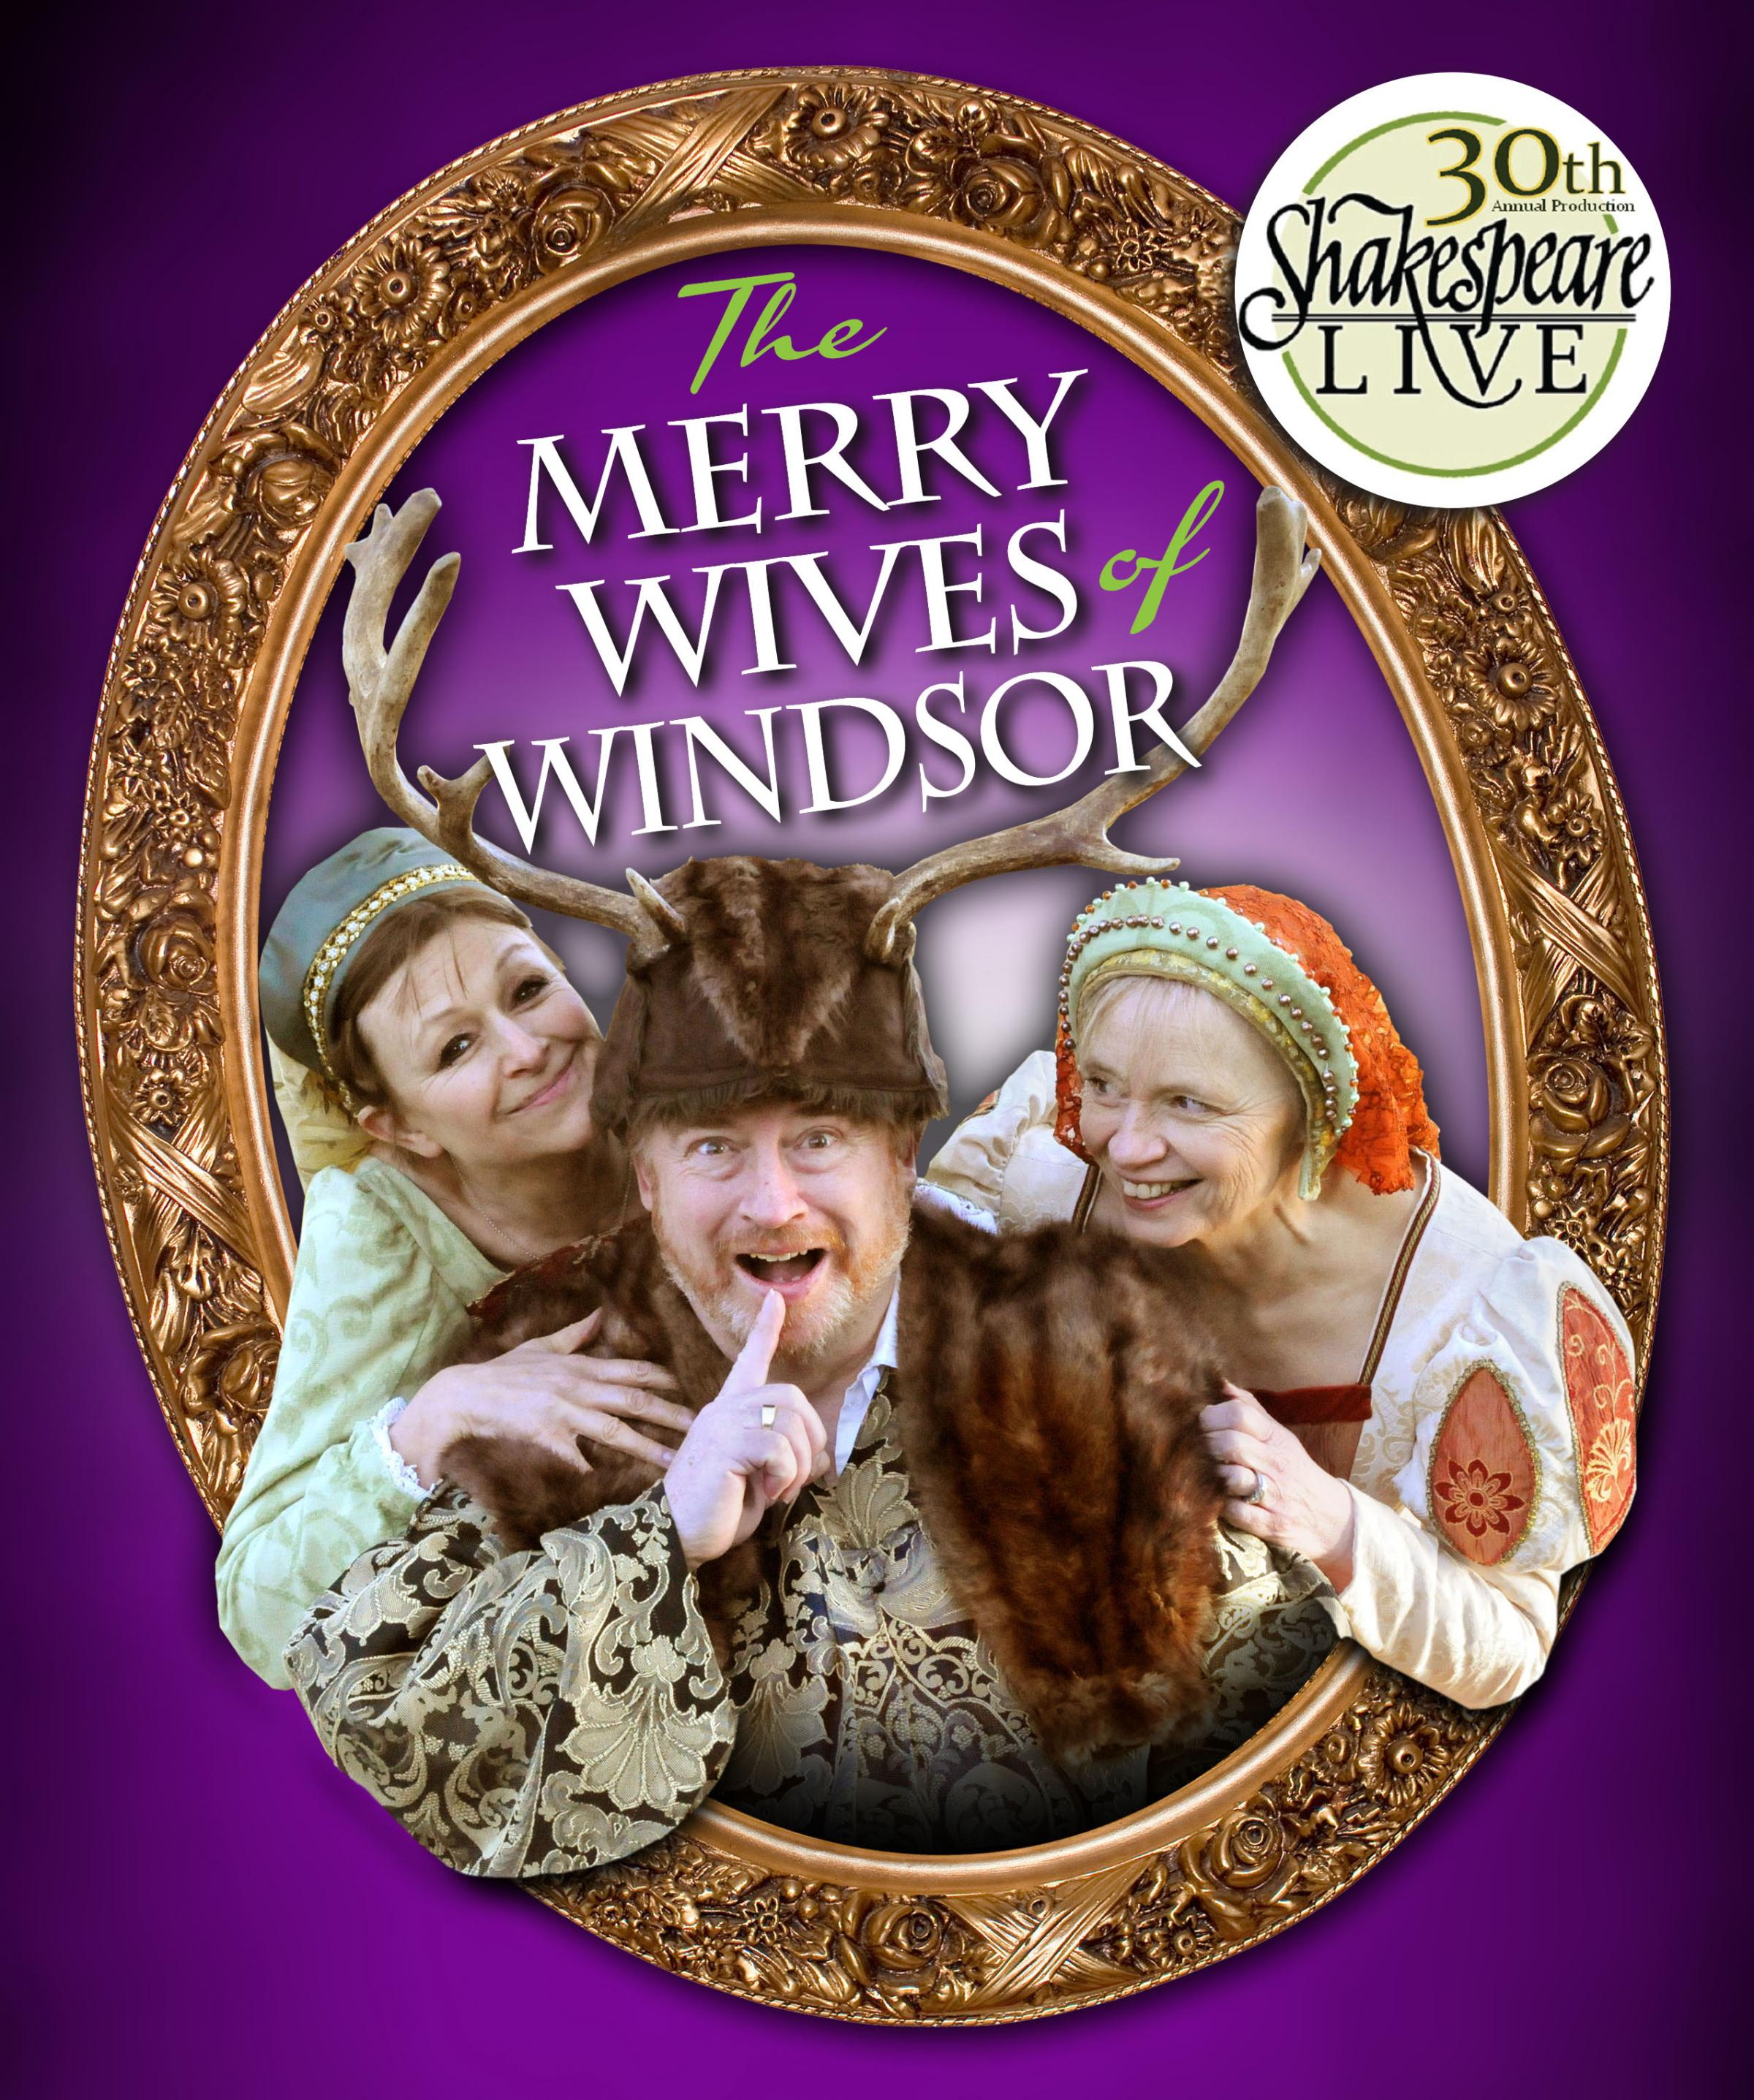 The Merry Wives of Windsor, as performed by Shakespeare Live